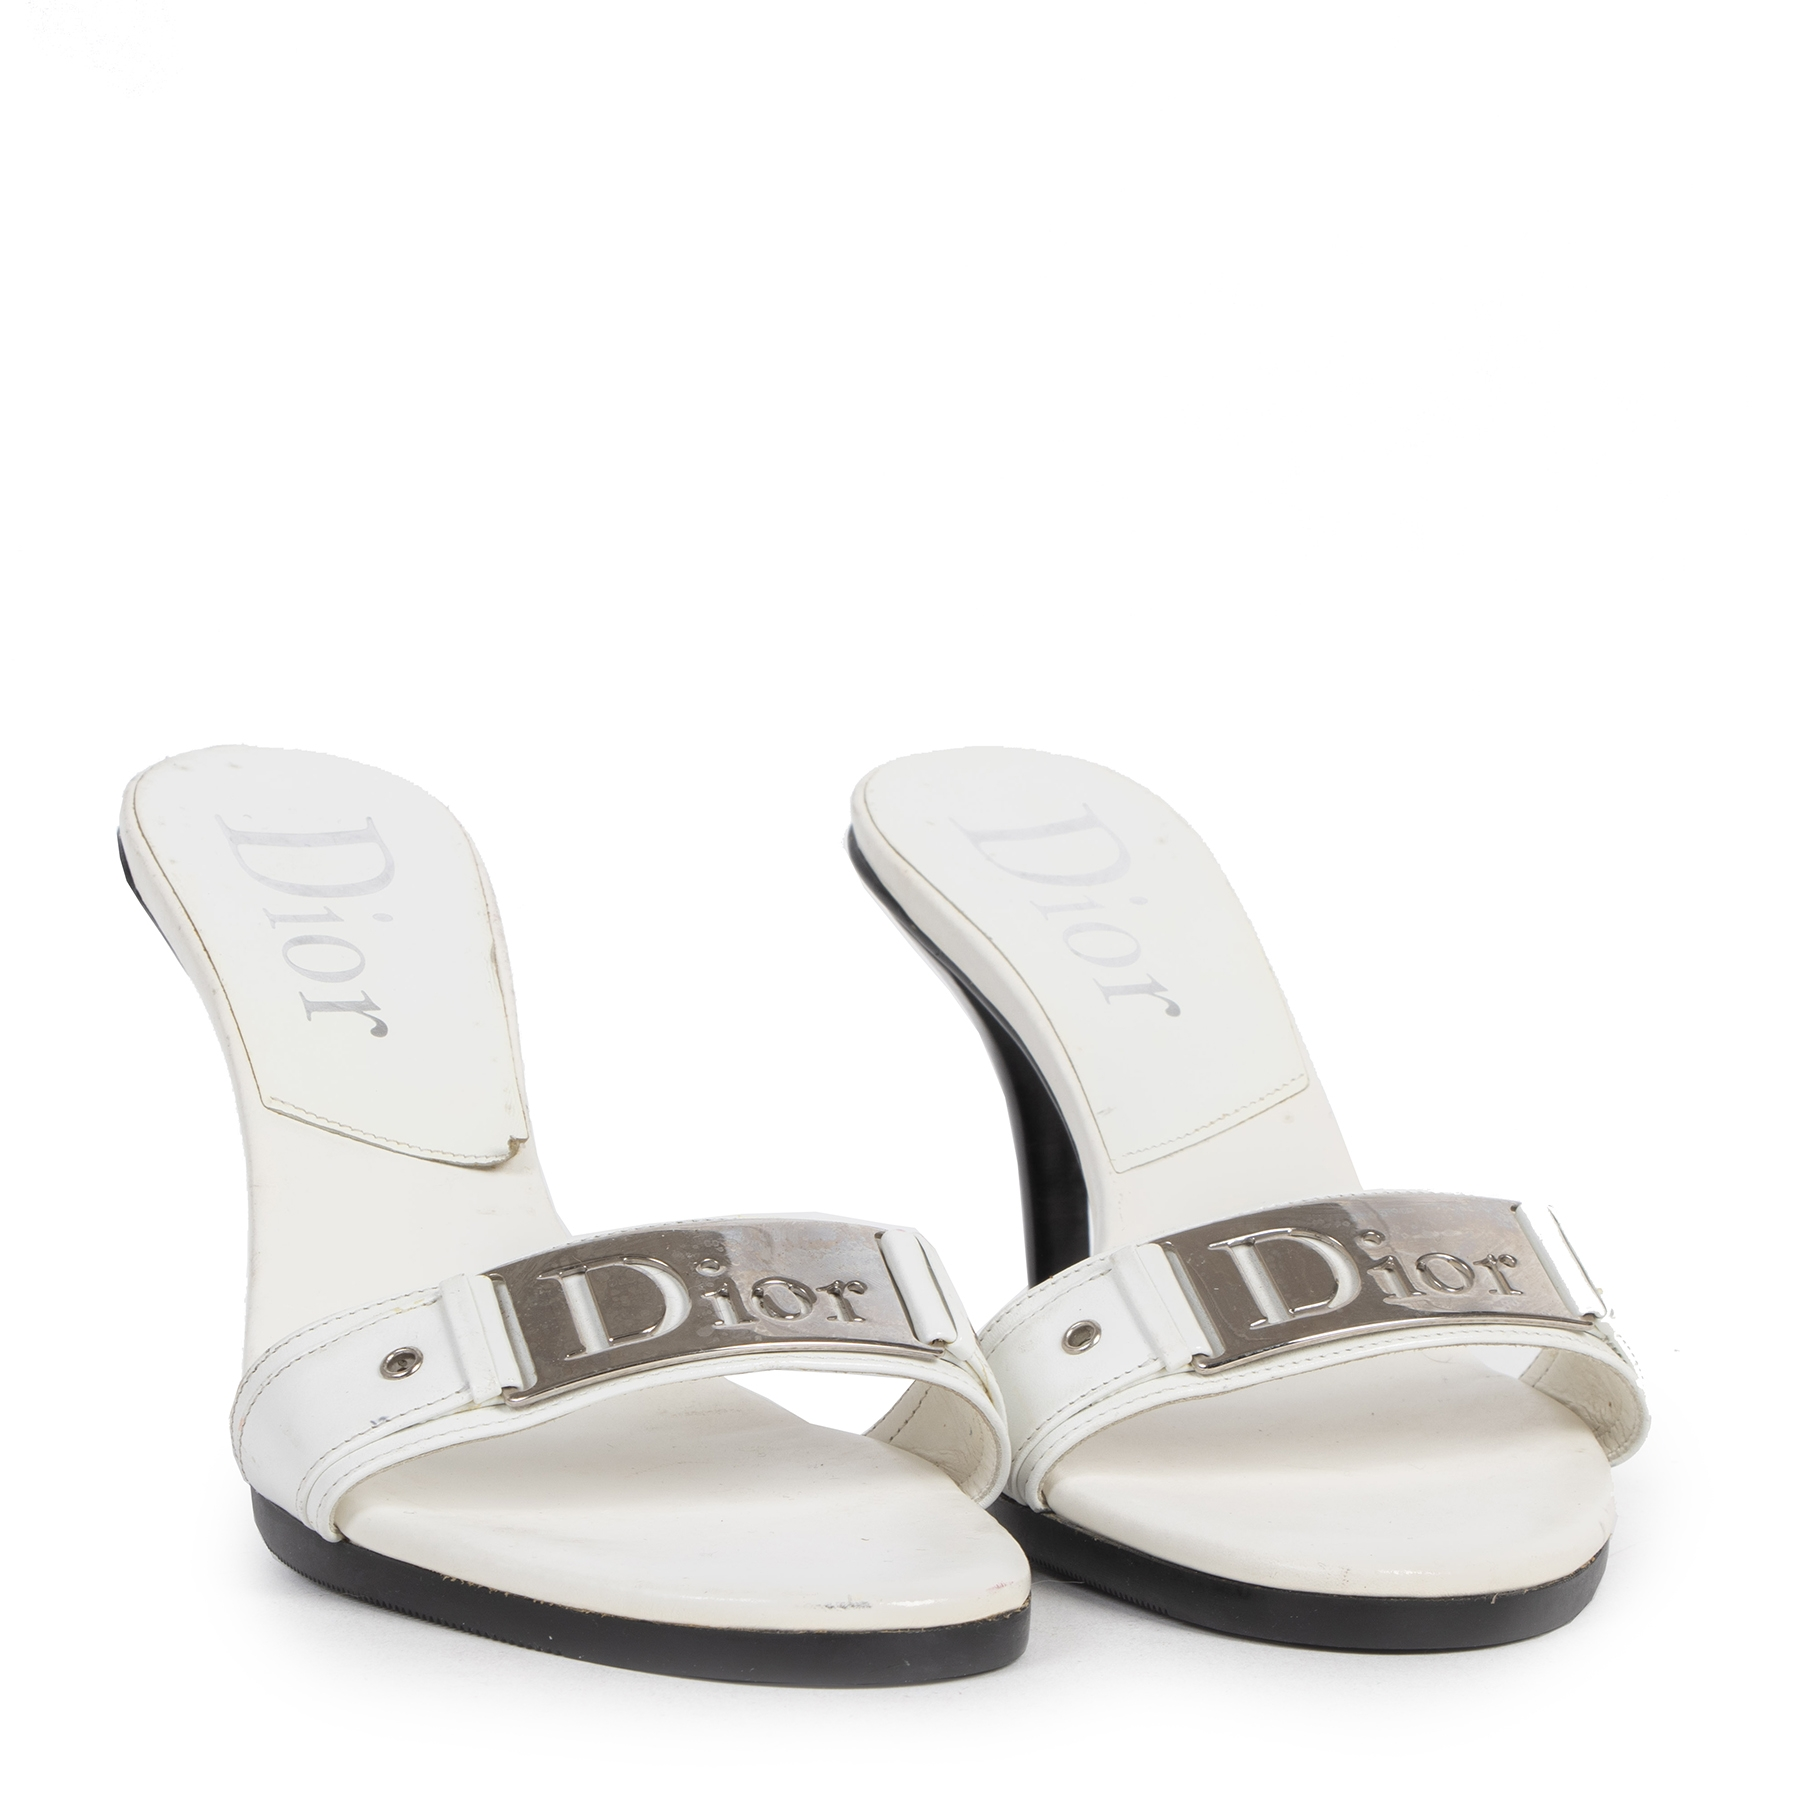 Authentic secondhand Dior White Logo Mules - Size 38 designer high heels luxury vintage webshop fashion safe secure online shopping worldwide shipping